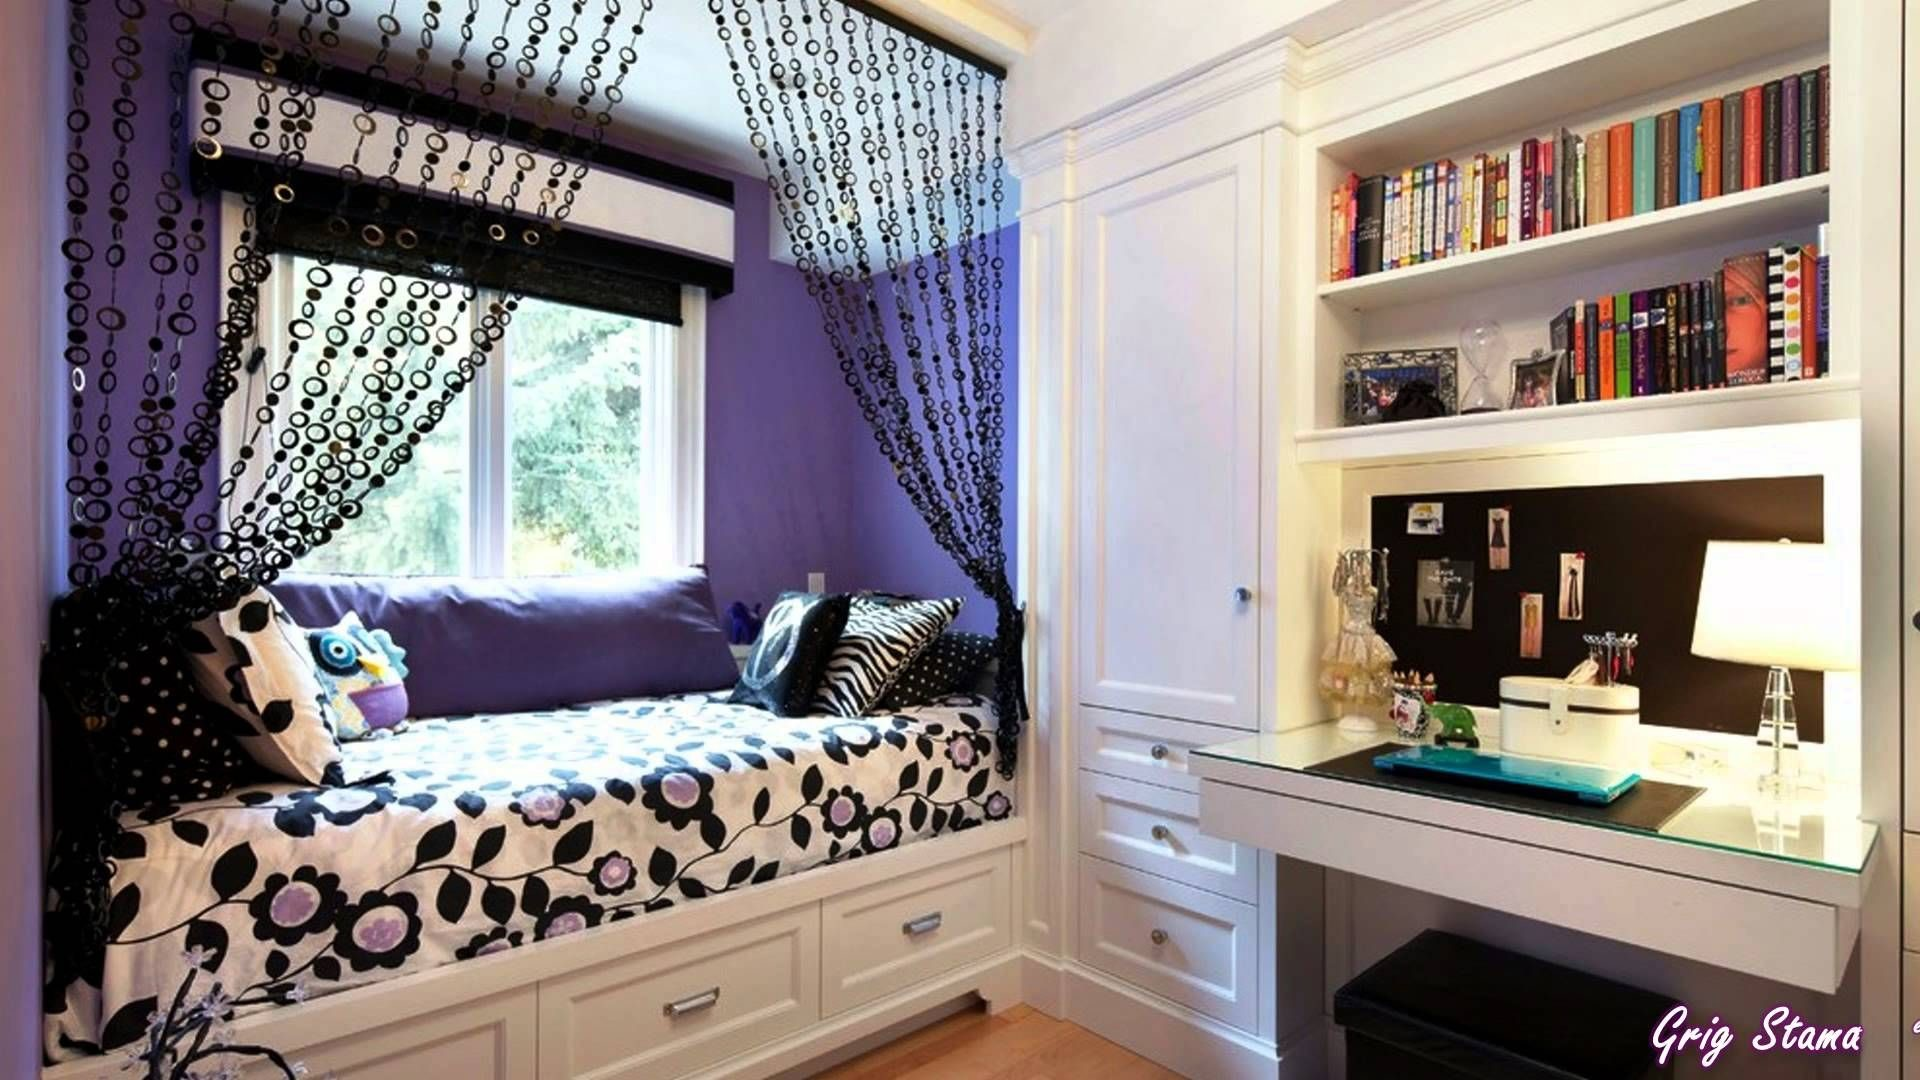 Cute Wallpapers for Teenage Girls (29+ images) on Simple But Cute Room Ideas  id=62130